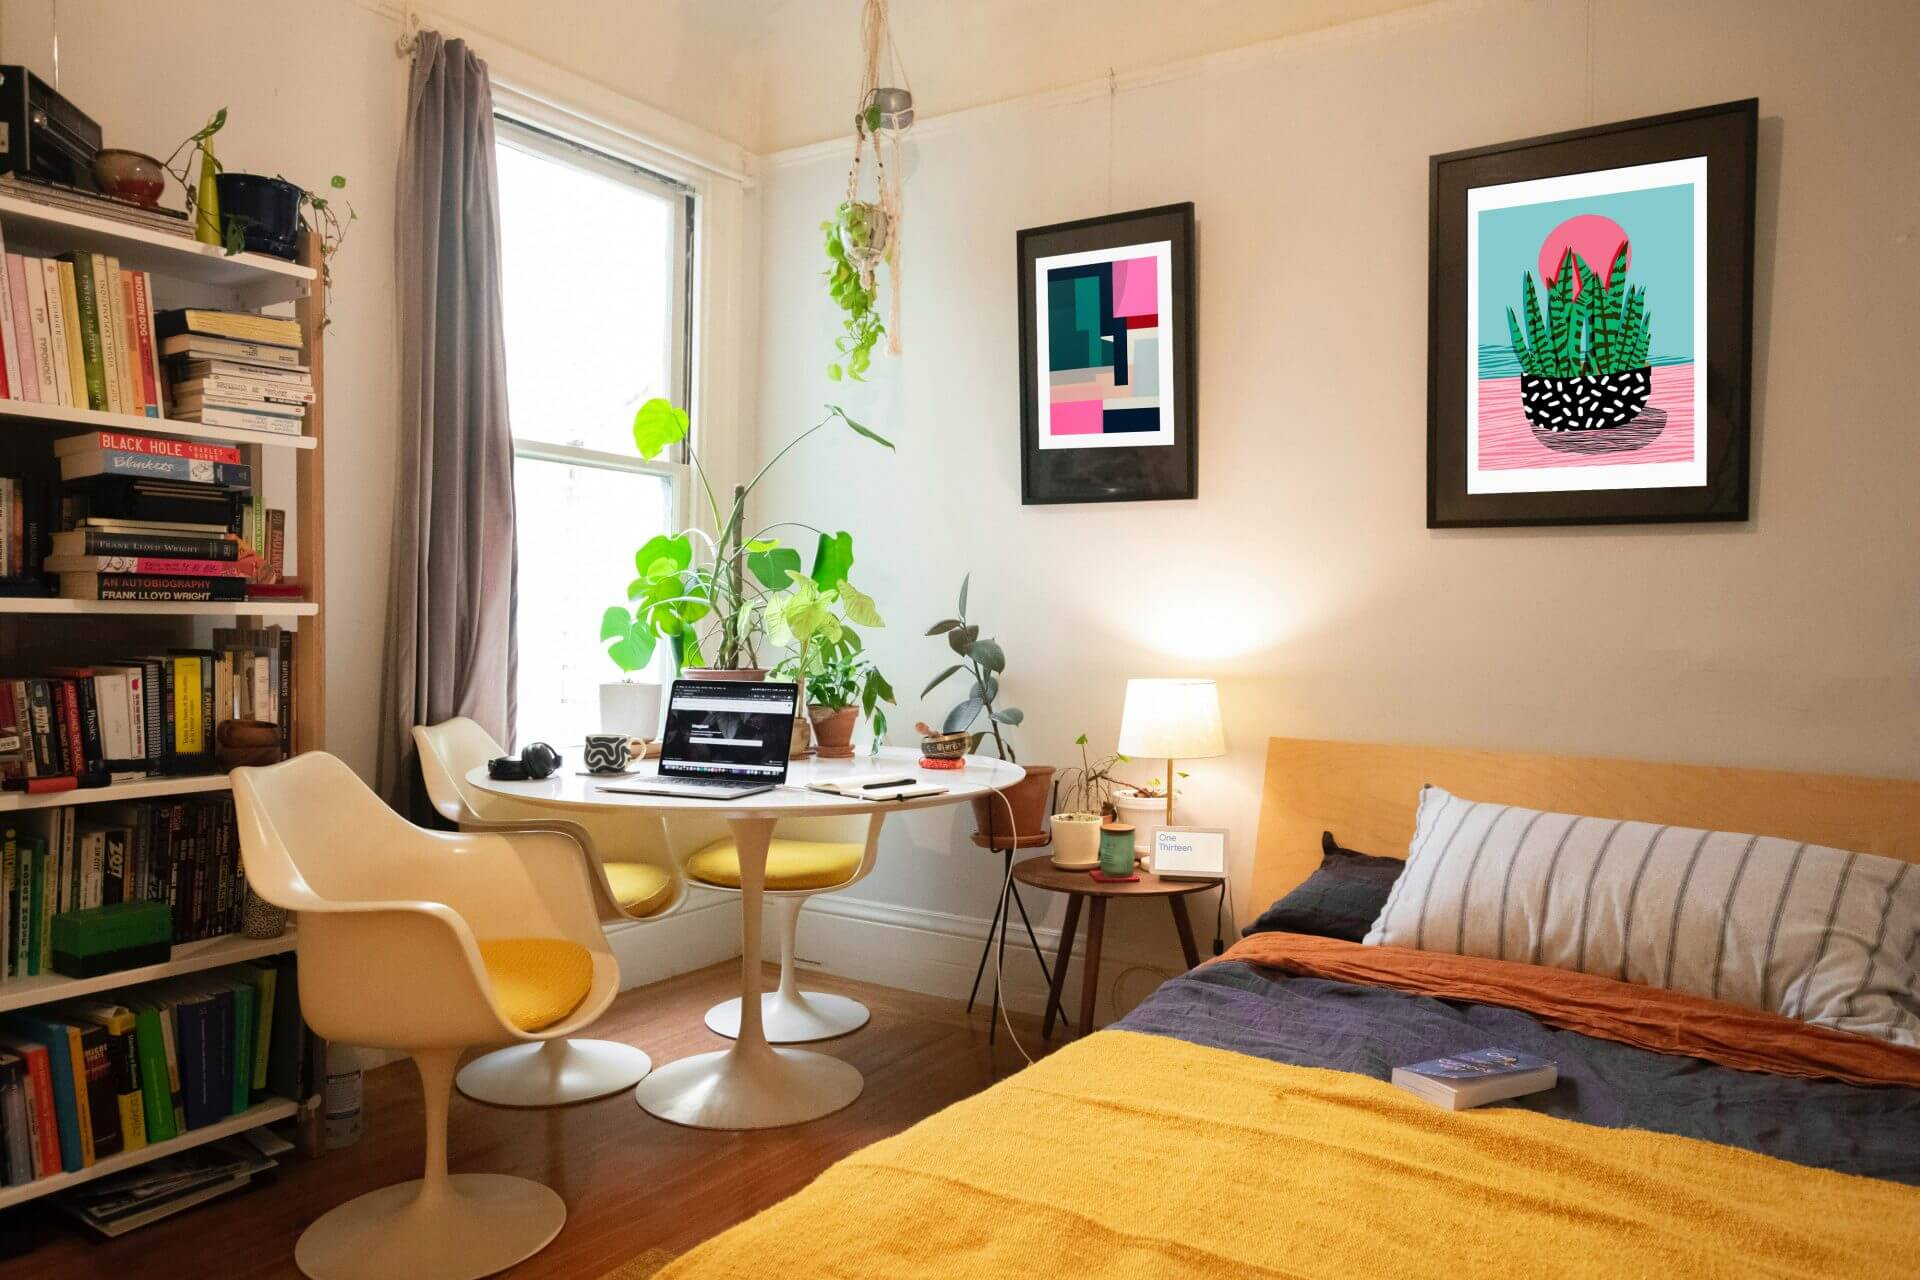 Bedroom setup with art and plants